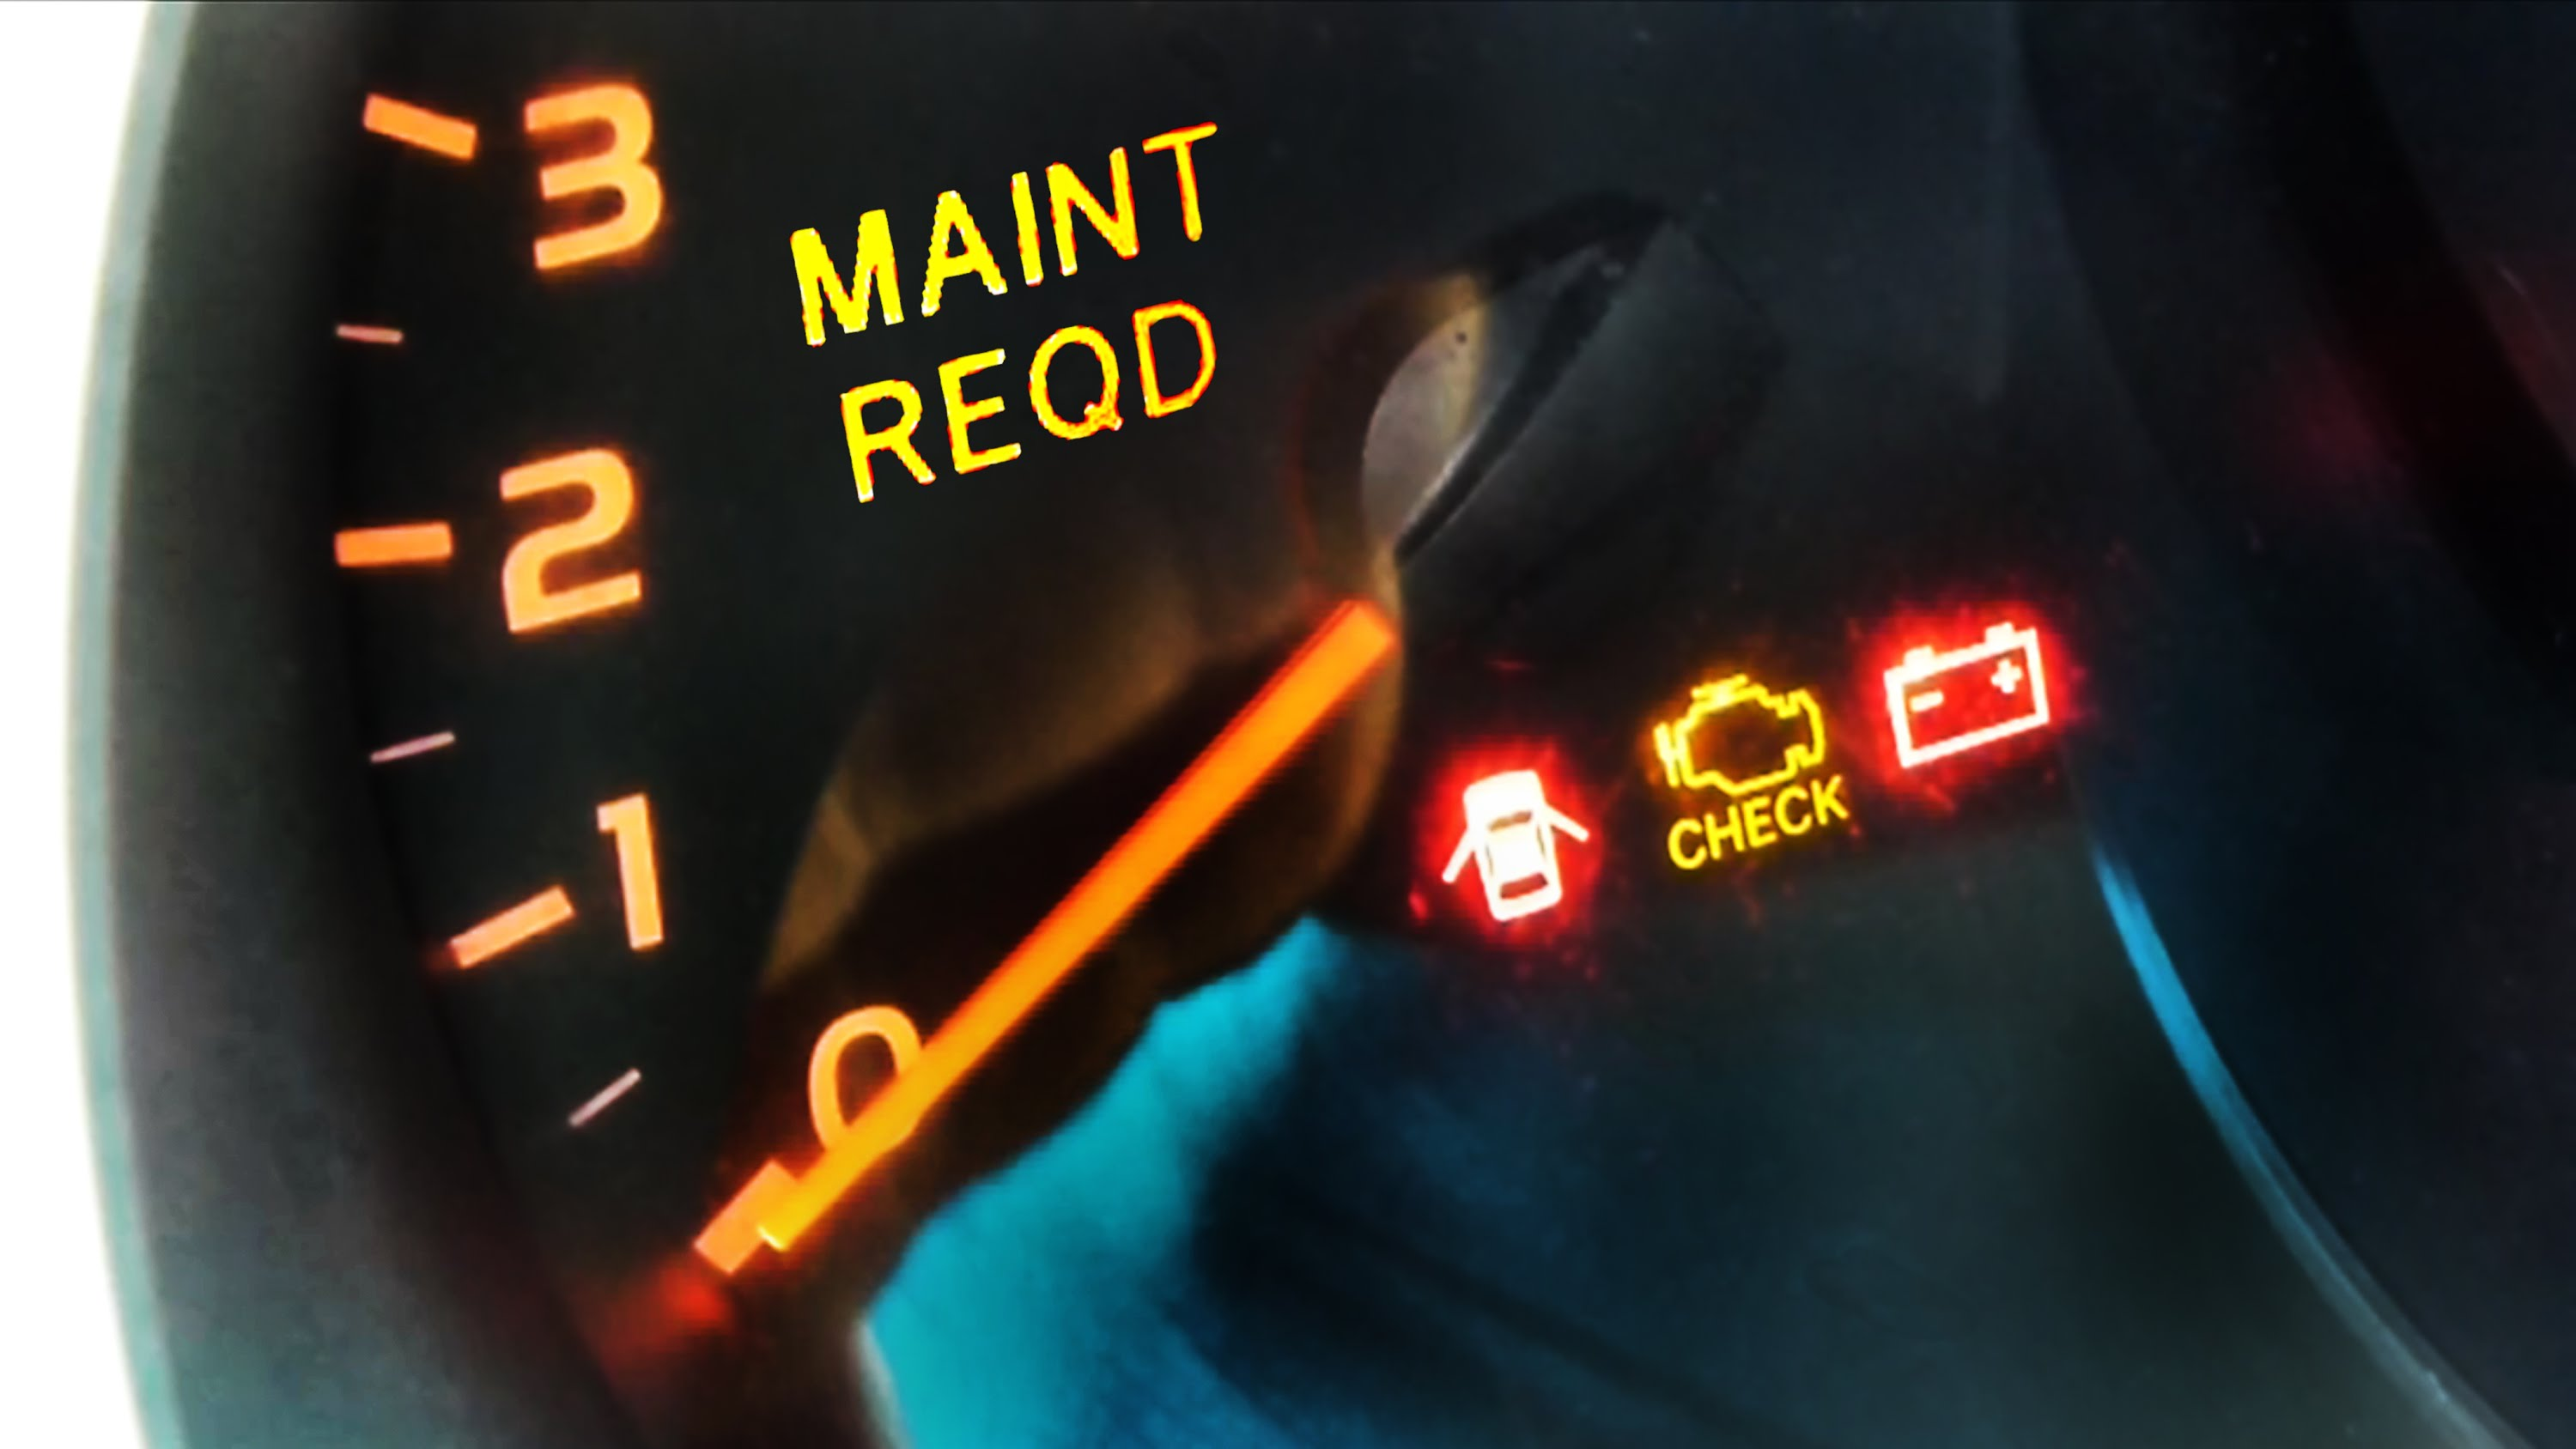 How Do I Reset The Maintenance Required Light In My Lexus 2005 Gx 470 Fuse Box Image Of Dashboard Showing